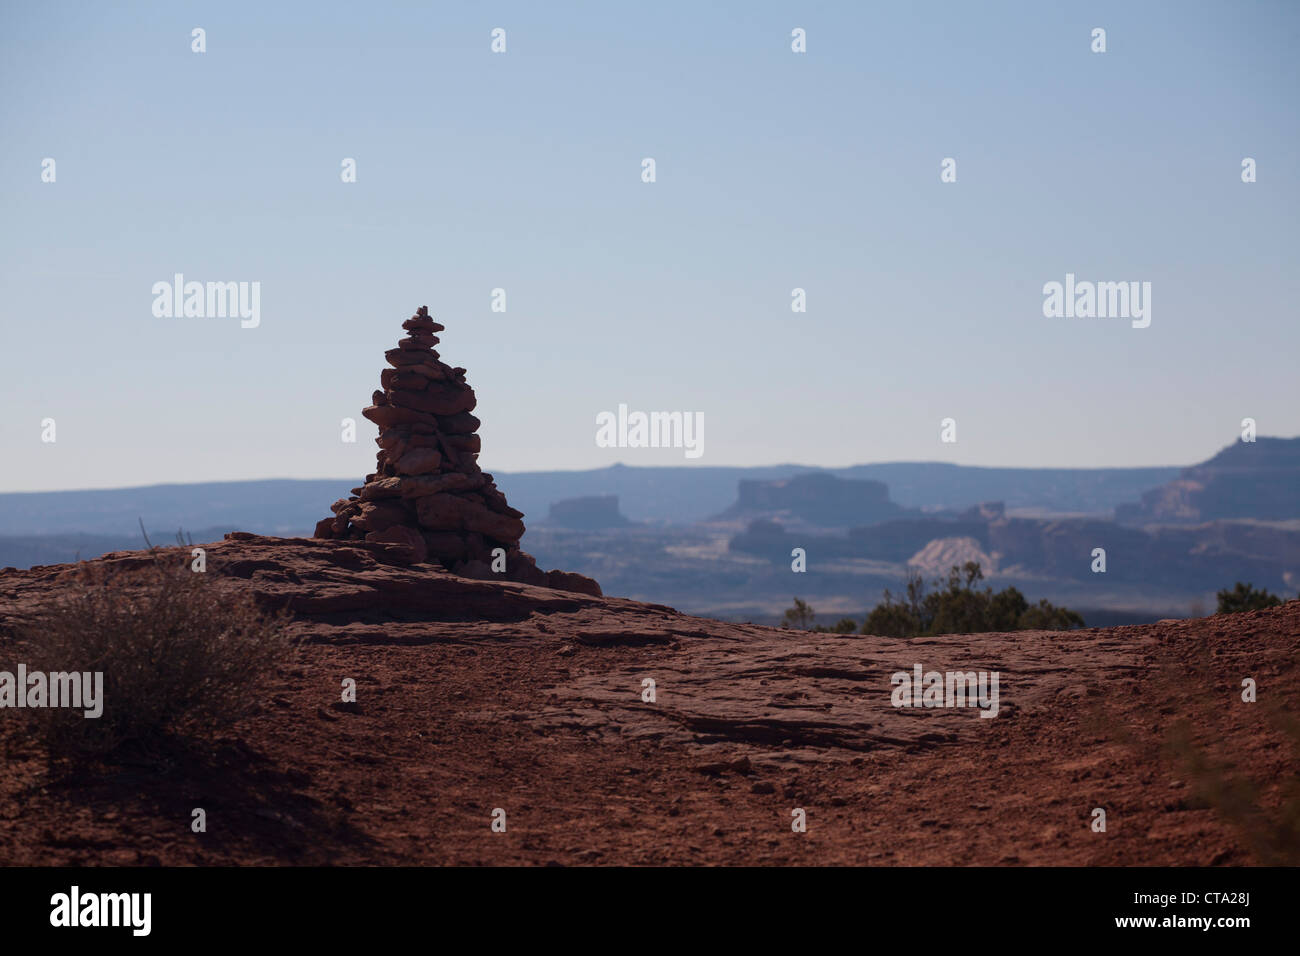 Rock cairn beside a trail in Arches National Park, Utah. - Stock Image